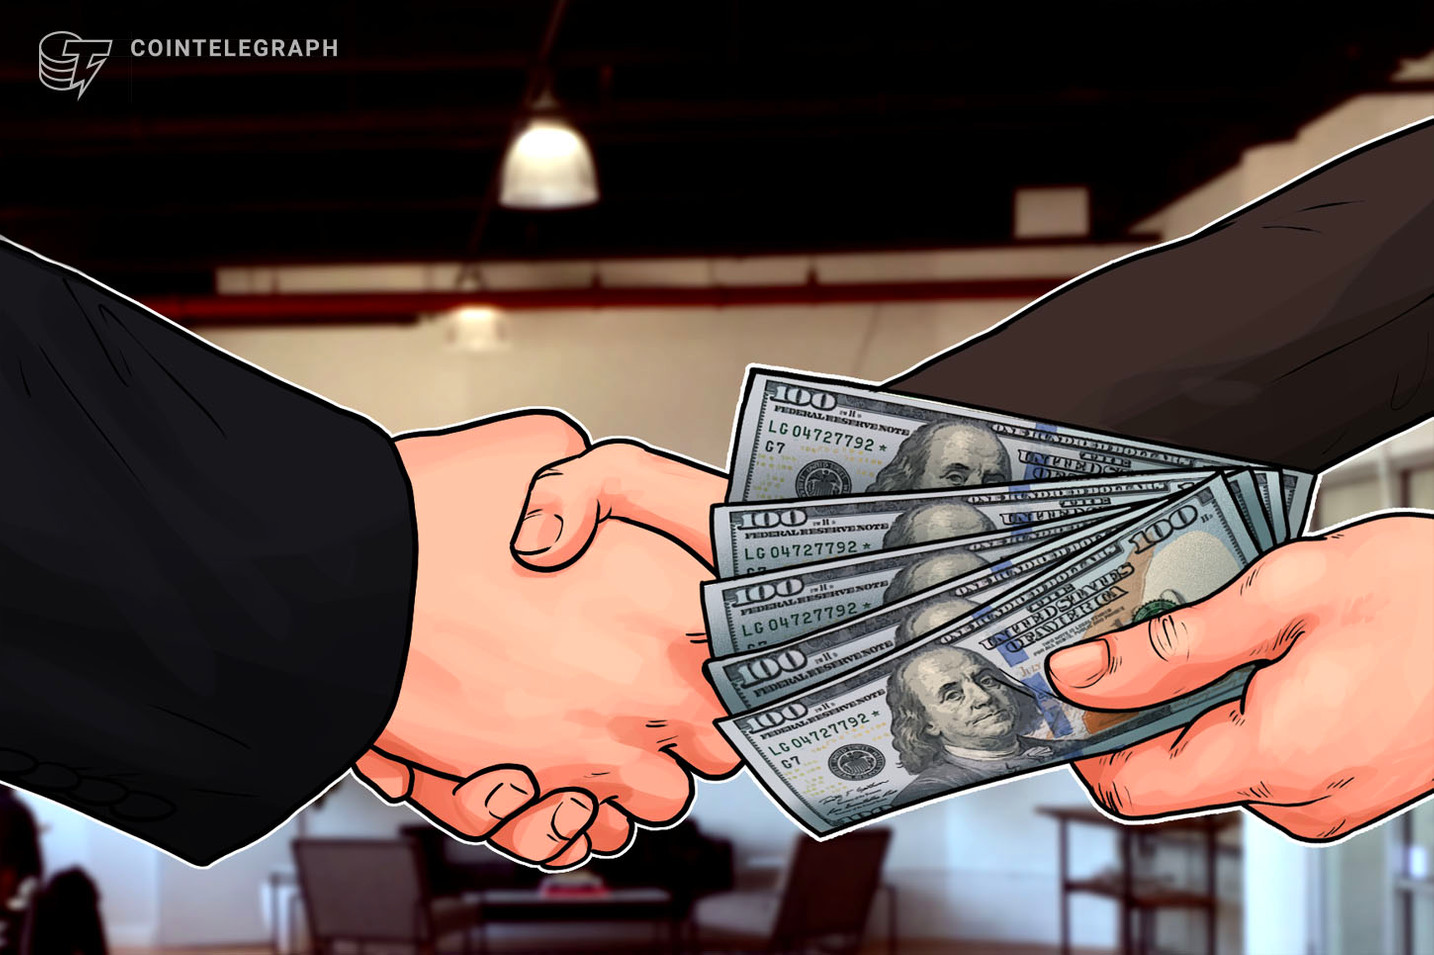 Qiwi Co-Founder Reissues $17M TON Investment as Loan to Telegram